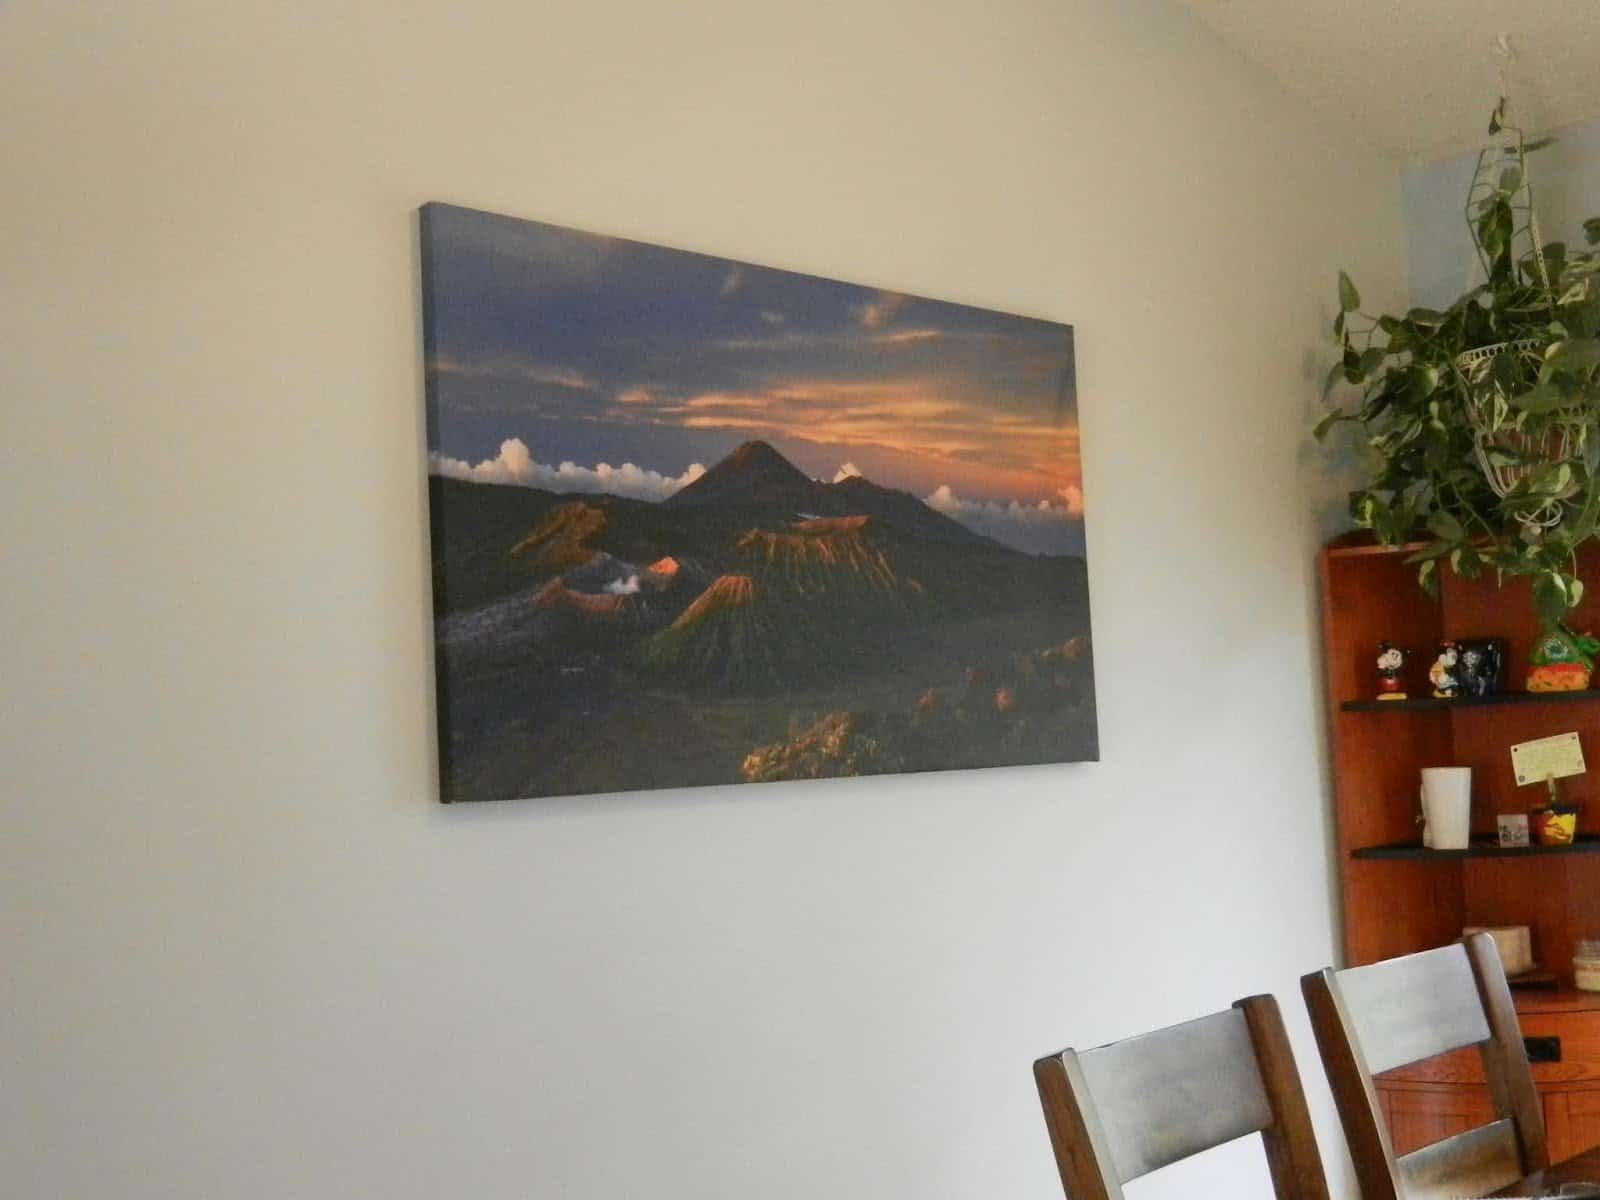 re-decorate with a new canvas